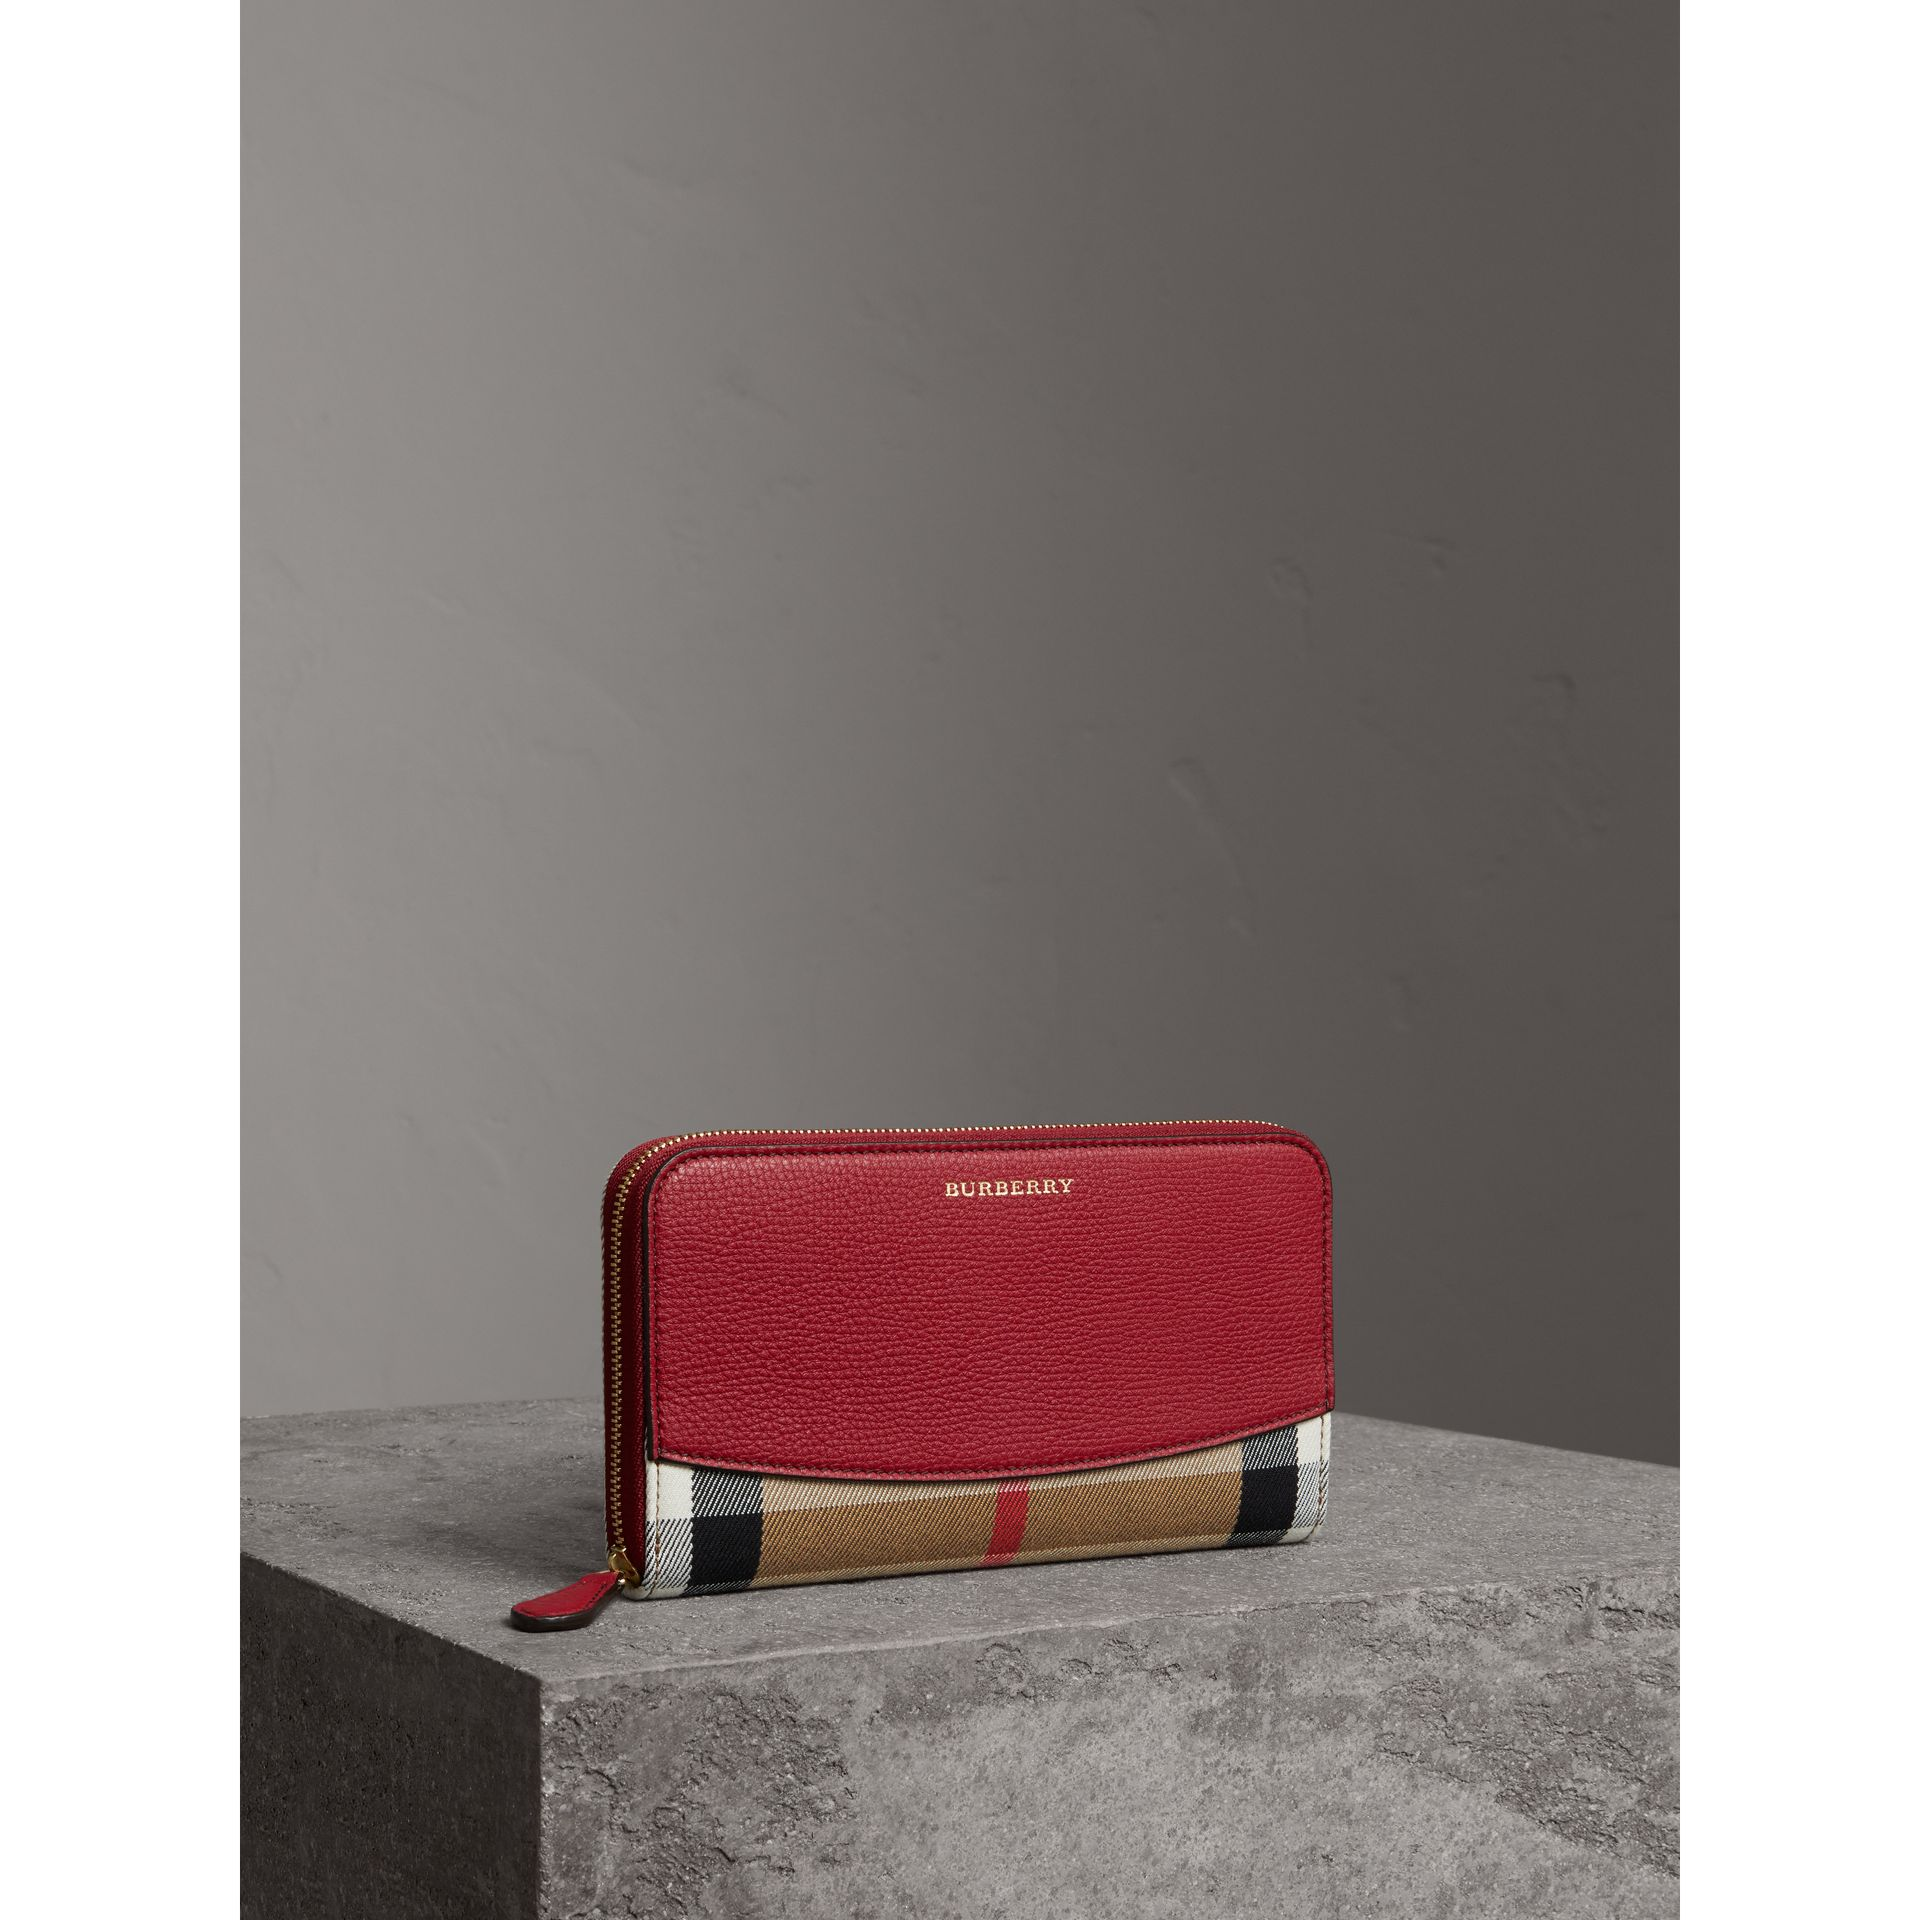 House Check and Leather Ziparound Wallet in Russet Red - Women | Burberry Australia - gallery image 0